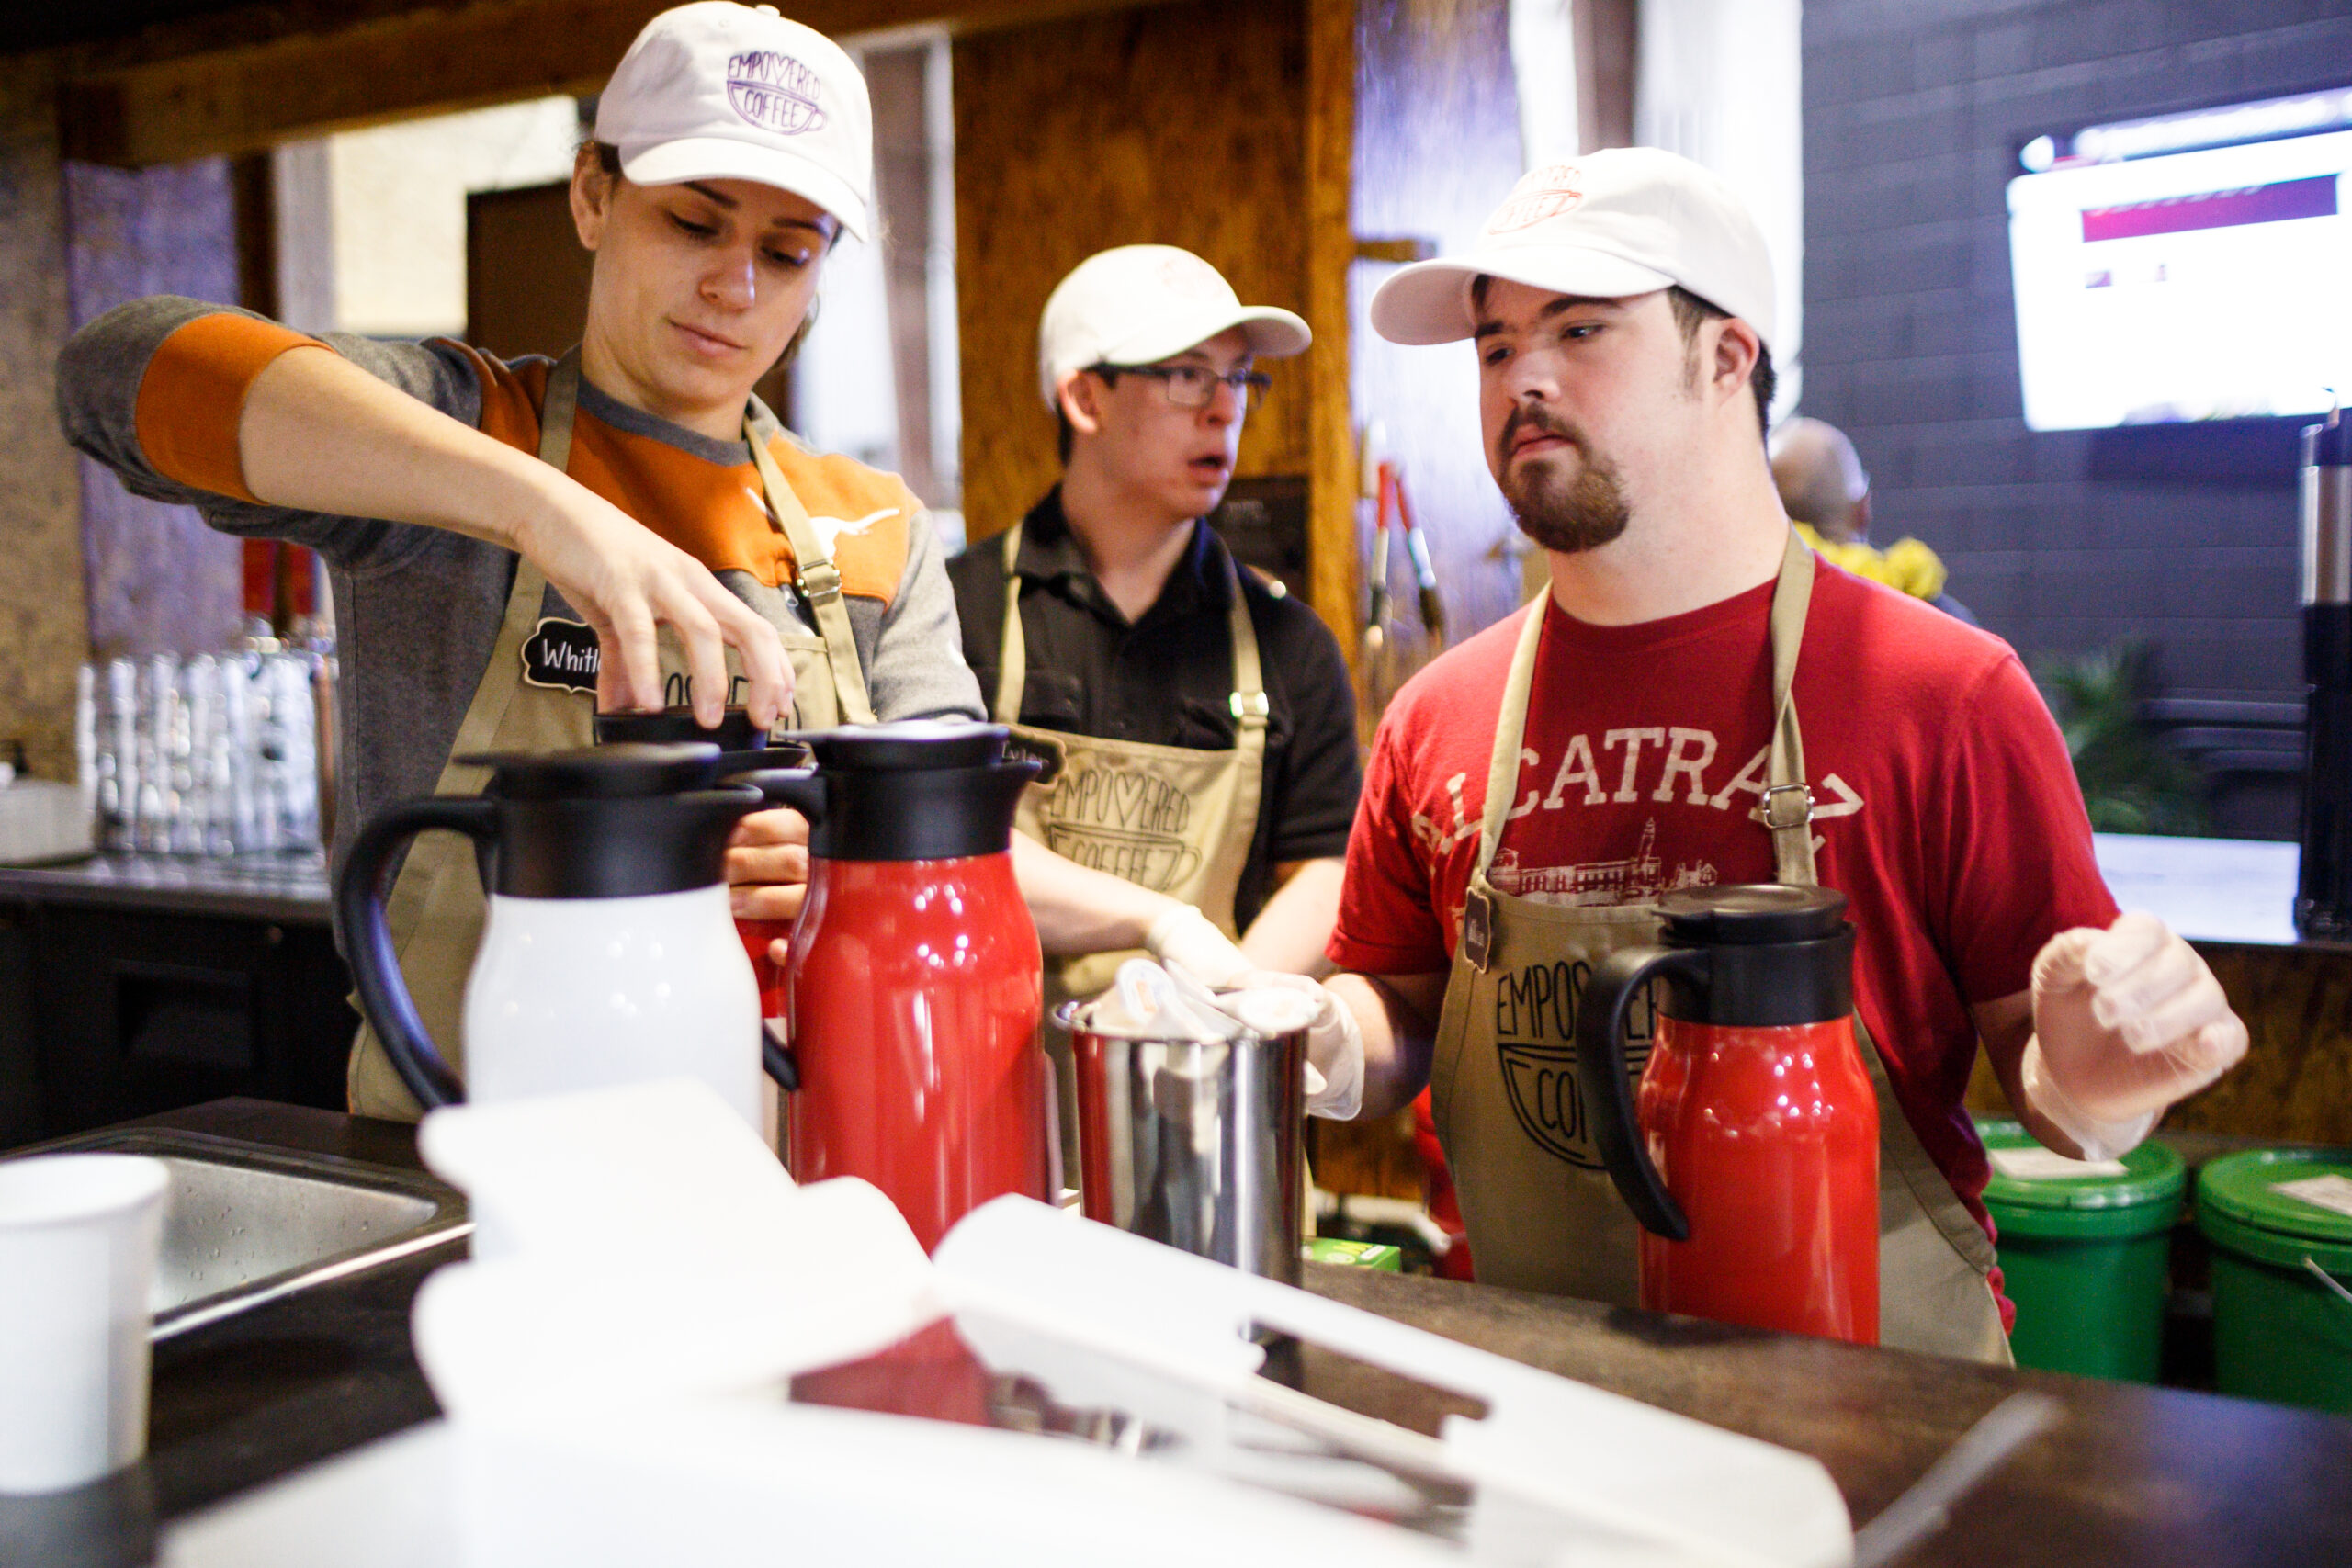 Empowered Coffee Jobs for IDDs in Austin